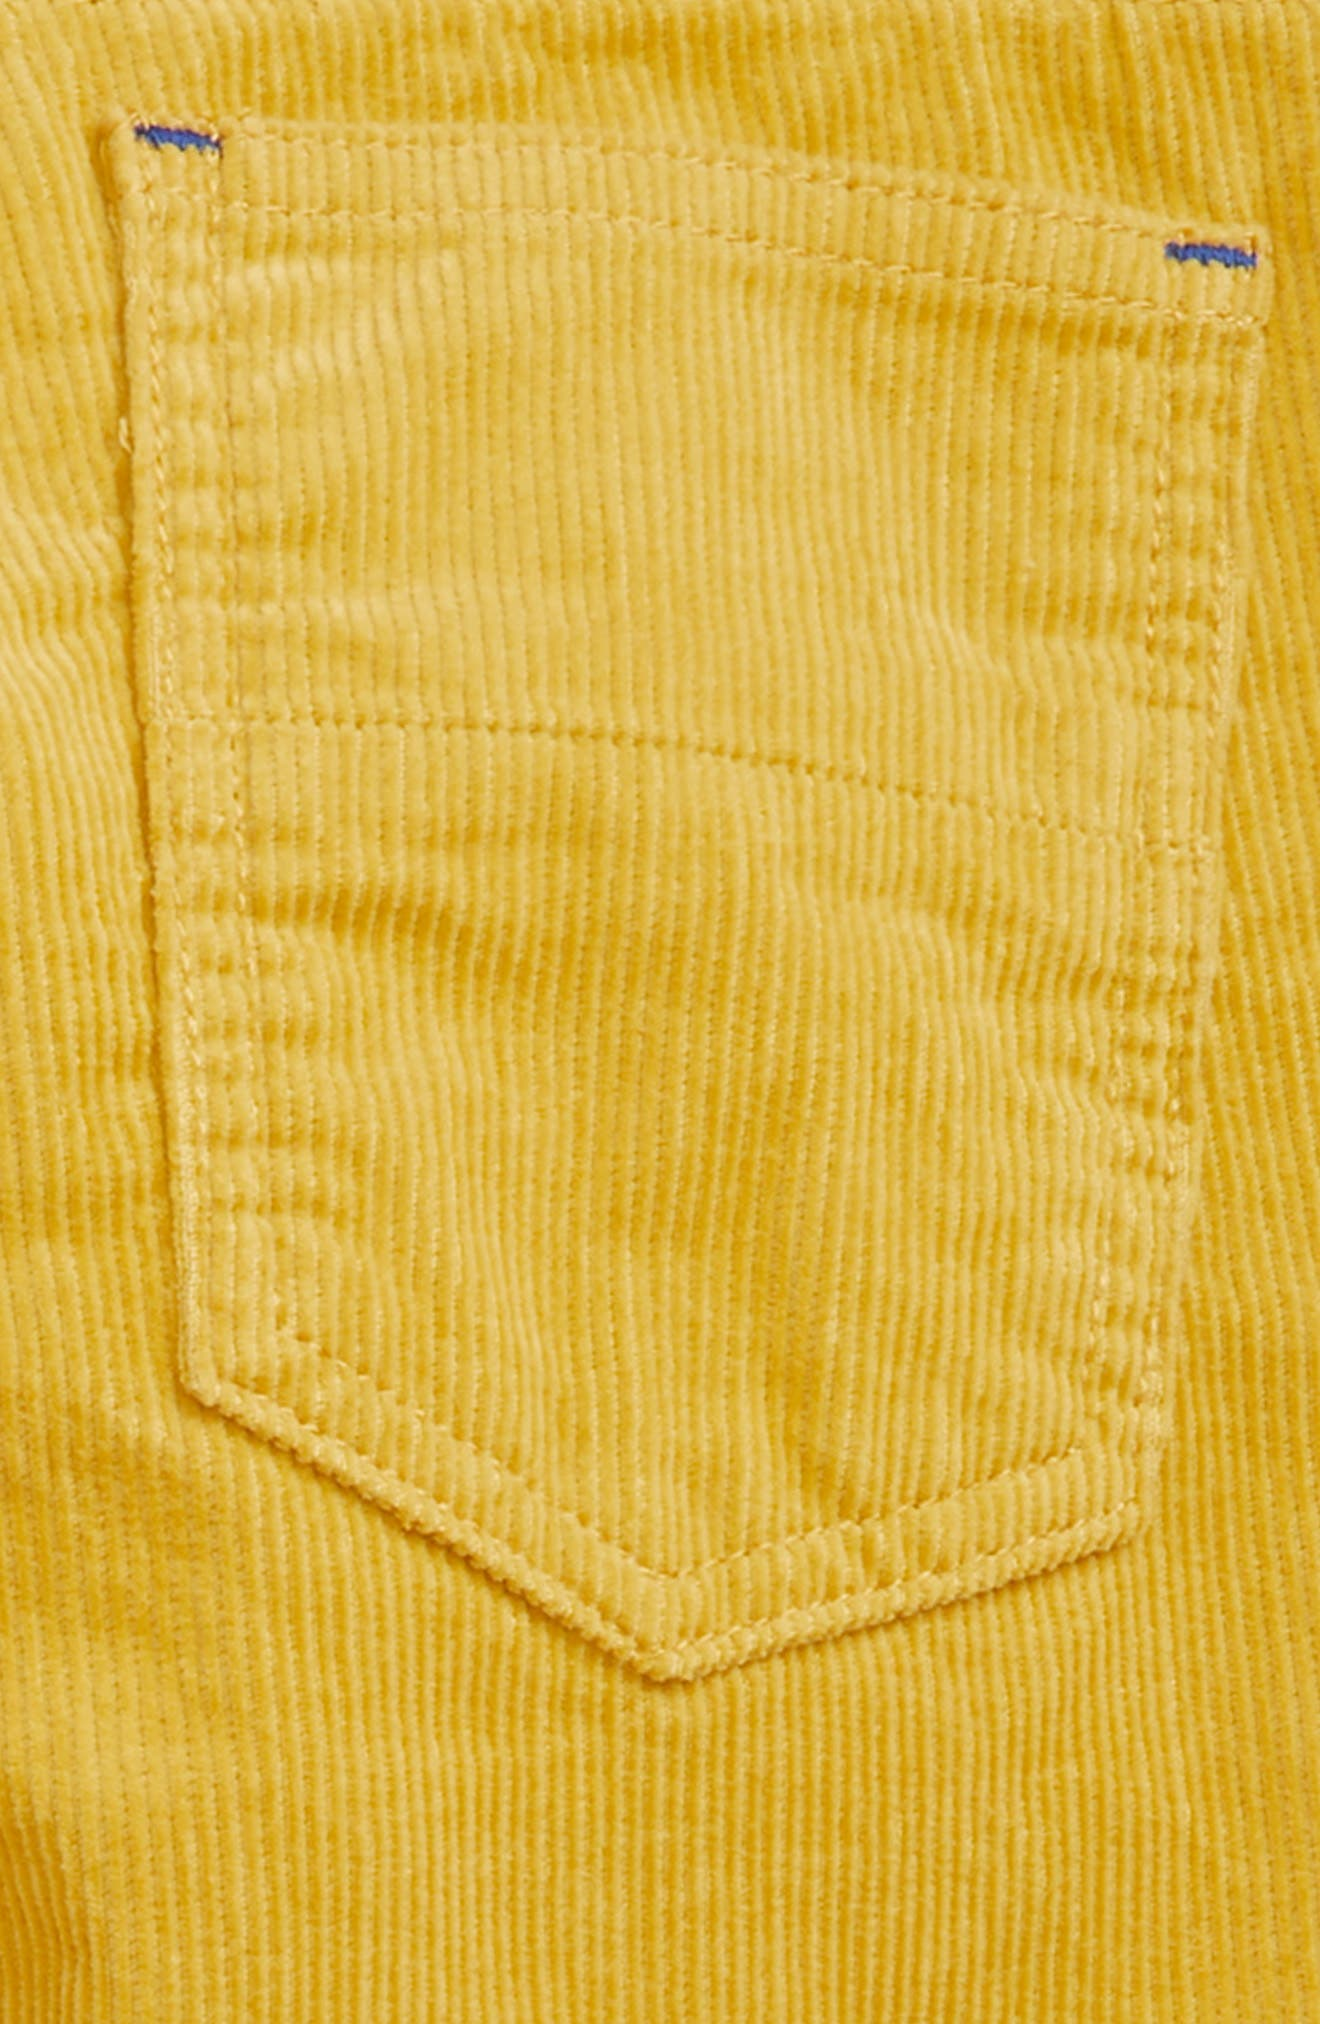 Slim Corduroy Jeans,                             Alternate thumbnail 3, color,                             SOFT LIME YELLOW